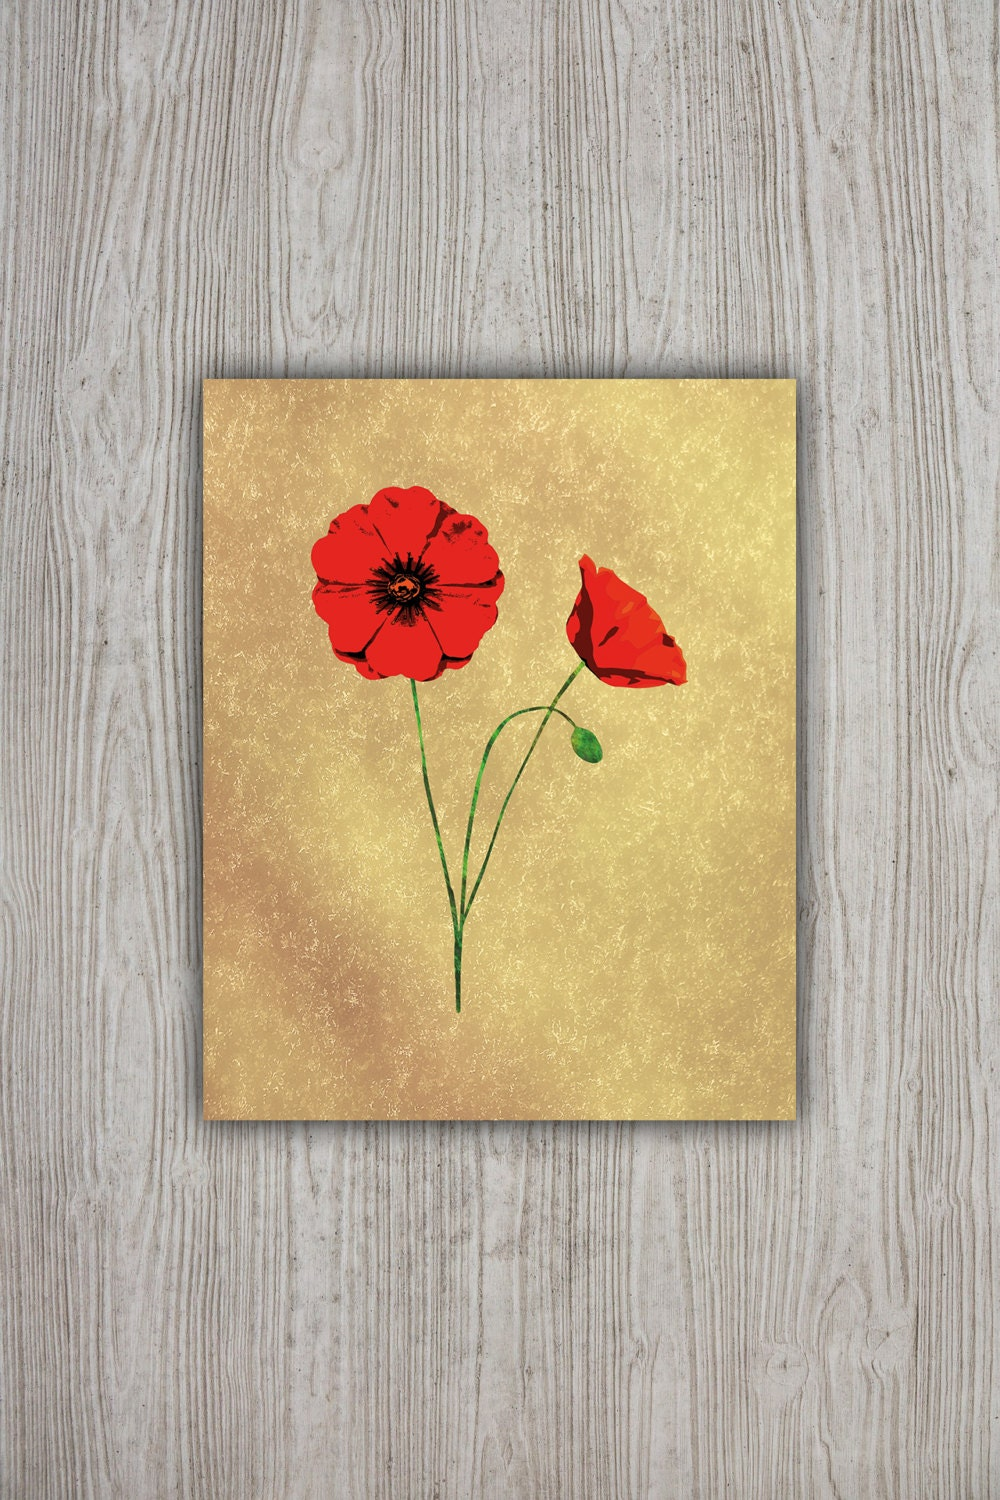 Red Poppies Wall Art Print 8x10 Floral Poster Flower | Etsy